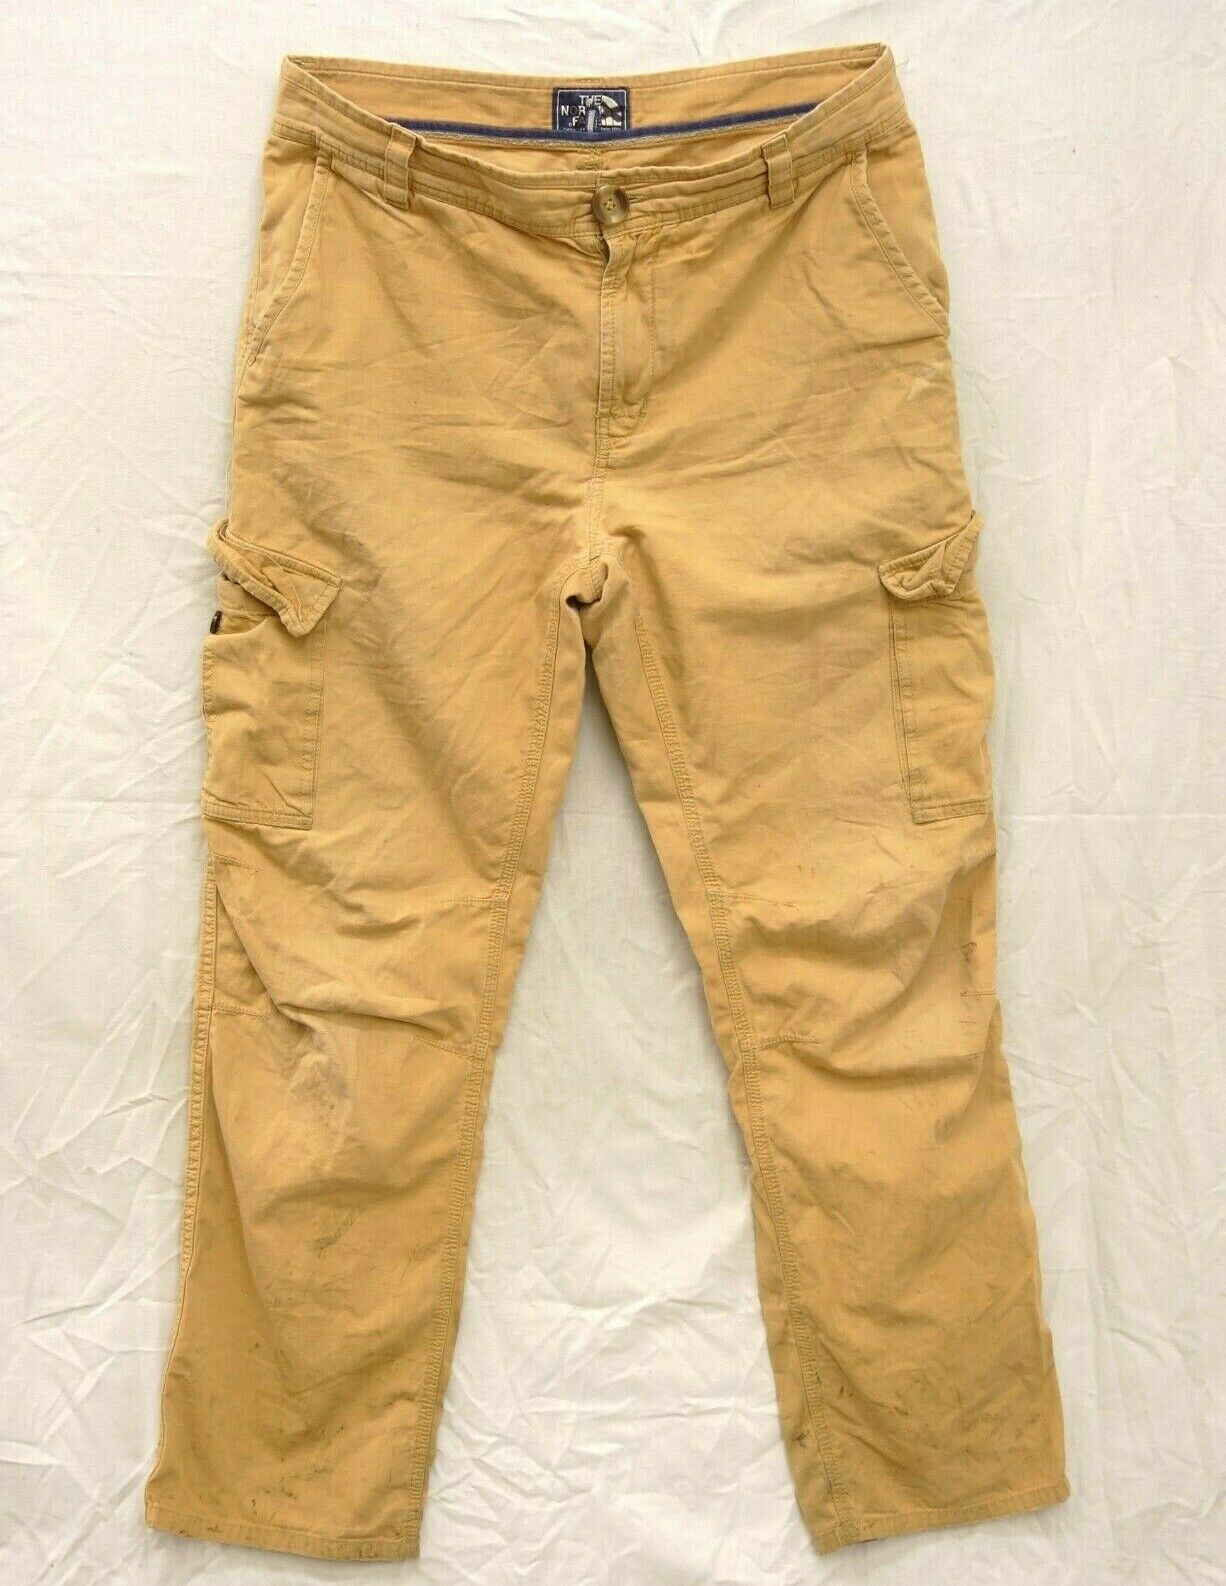 The North Face Mens Sz 32 Regular Tan Cargo Trail Pants Midweight Woven